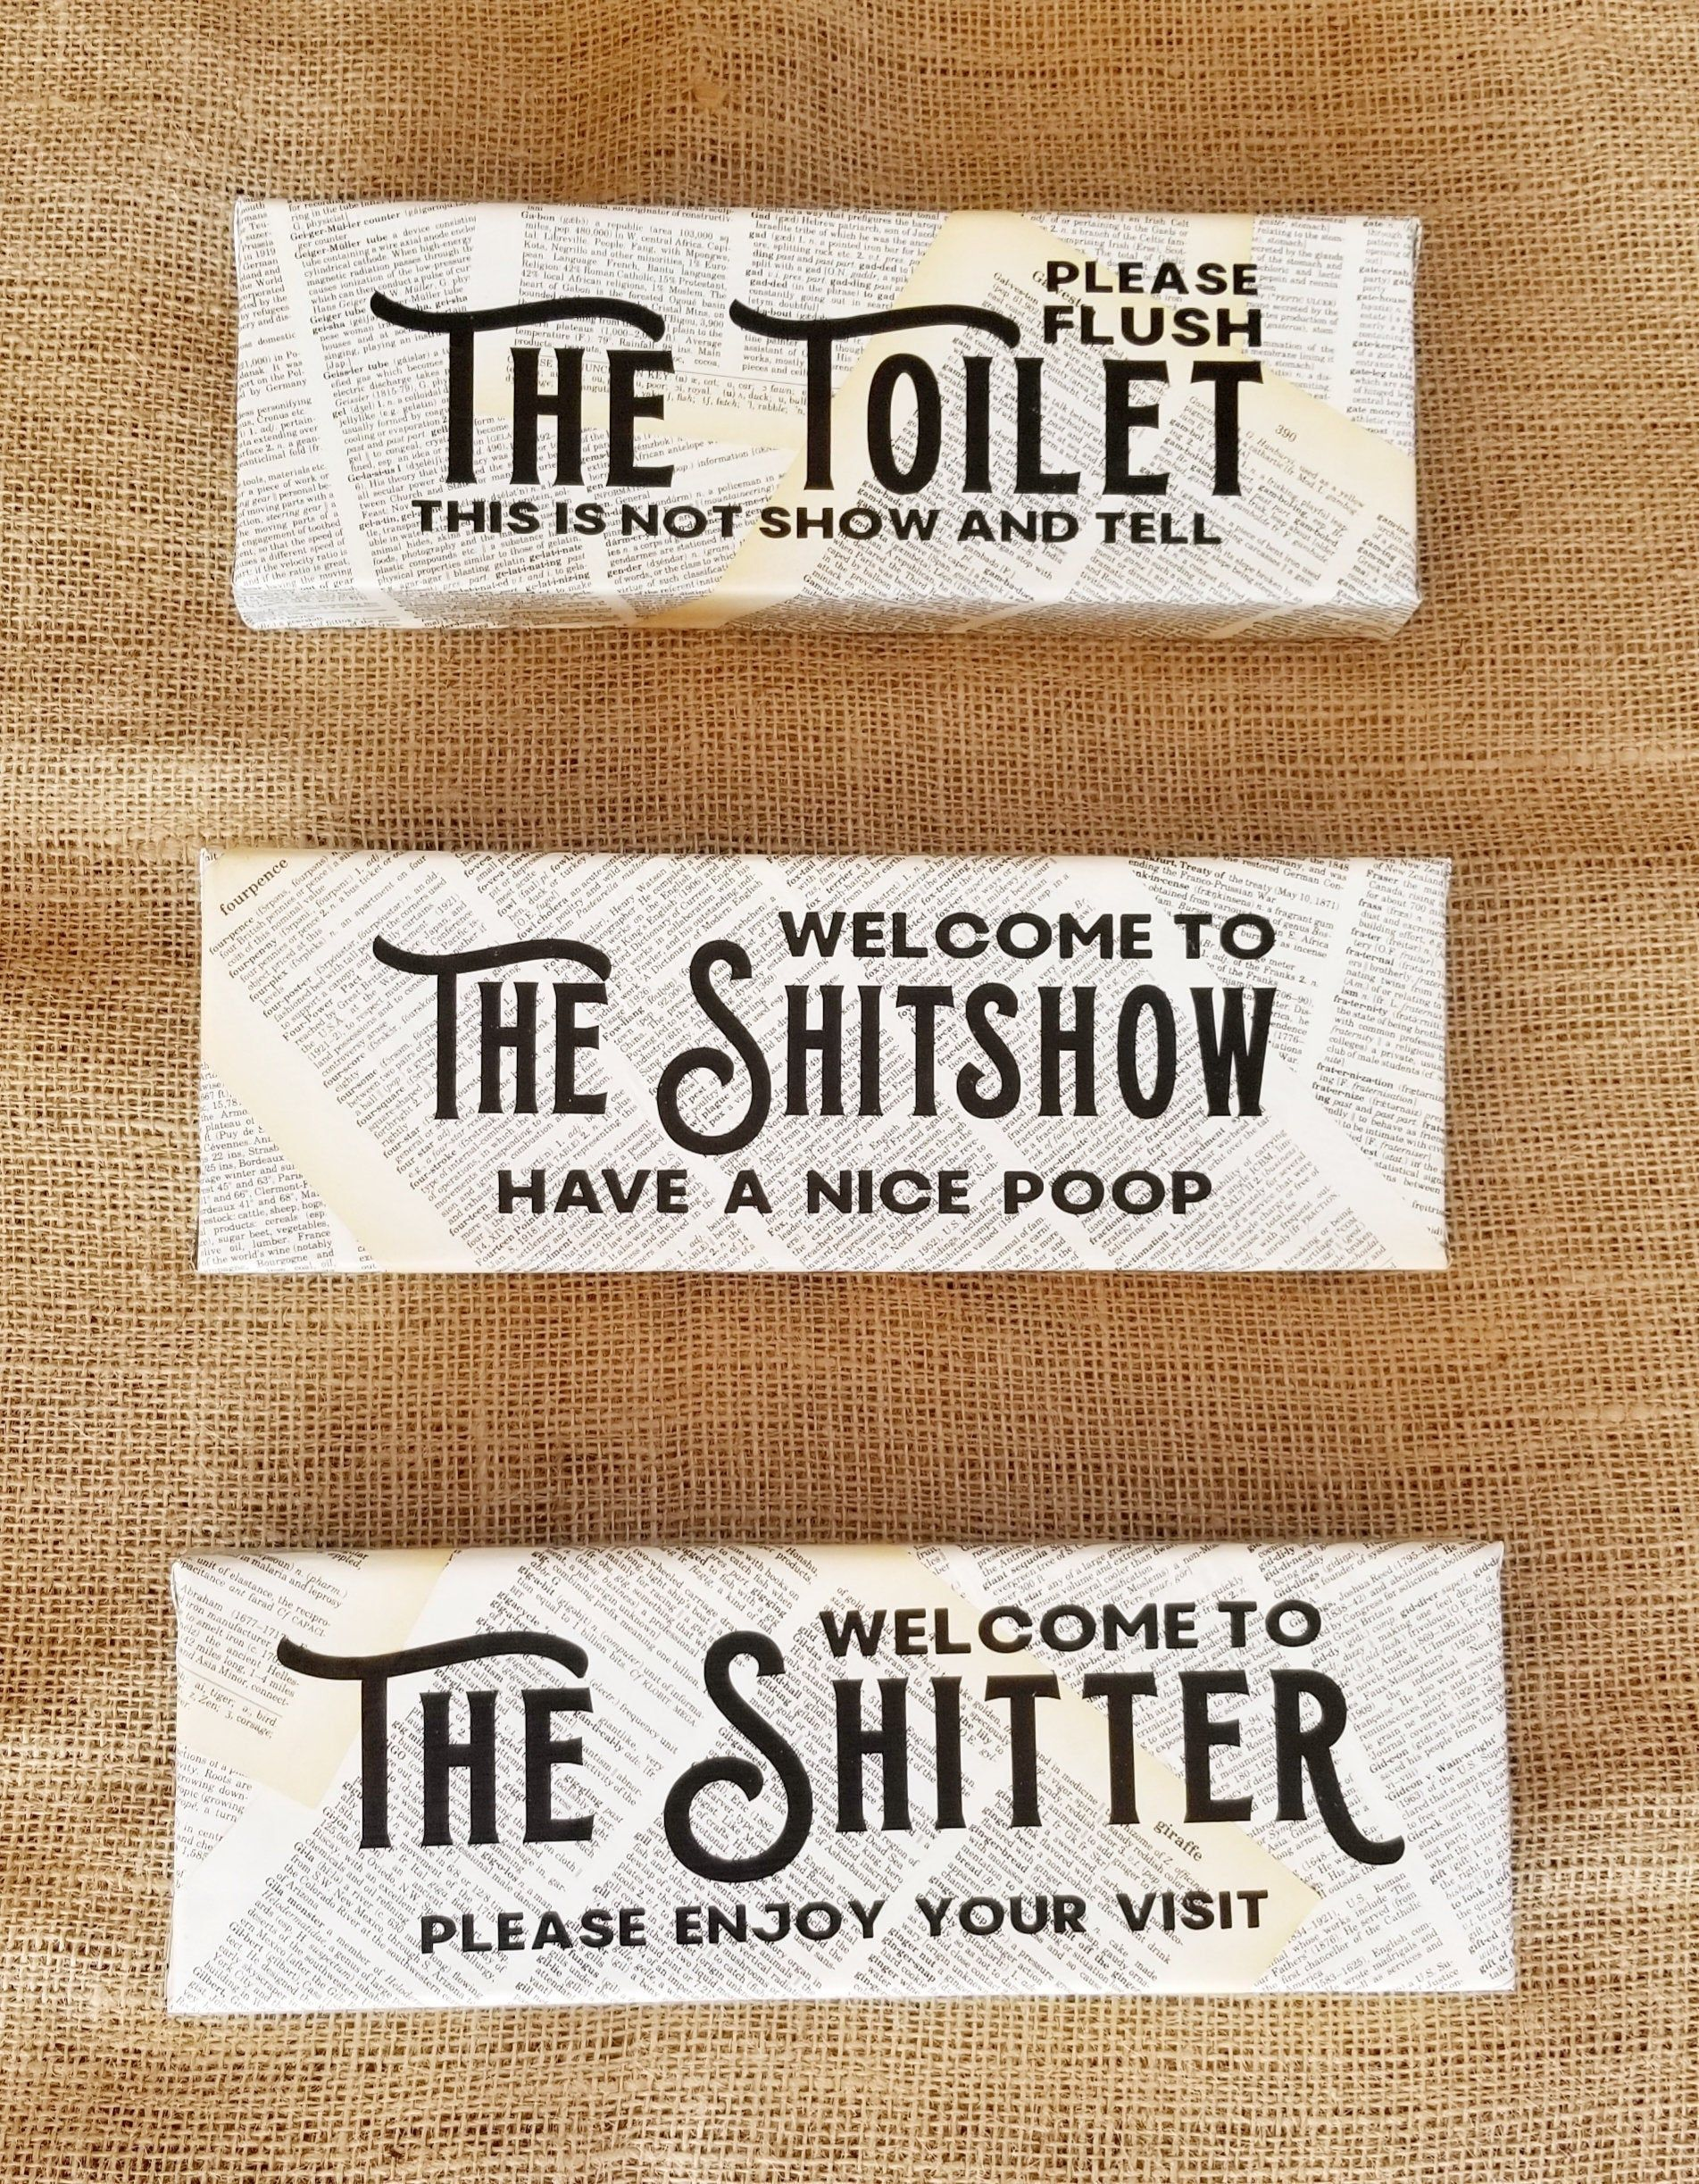 Photo of Handcrafted Funny Bathroom Signs, Shitter, Shitshow, Toilet, Loo, Restroom, Bath, Washroom, Wall Art, Potty Mouth